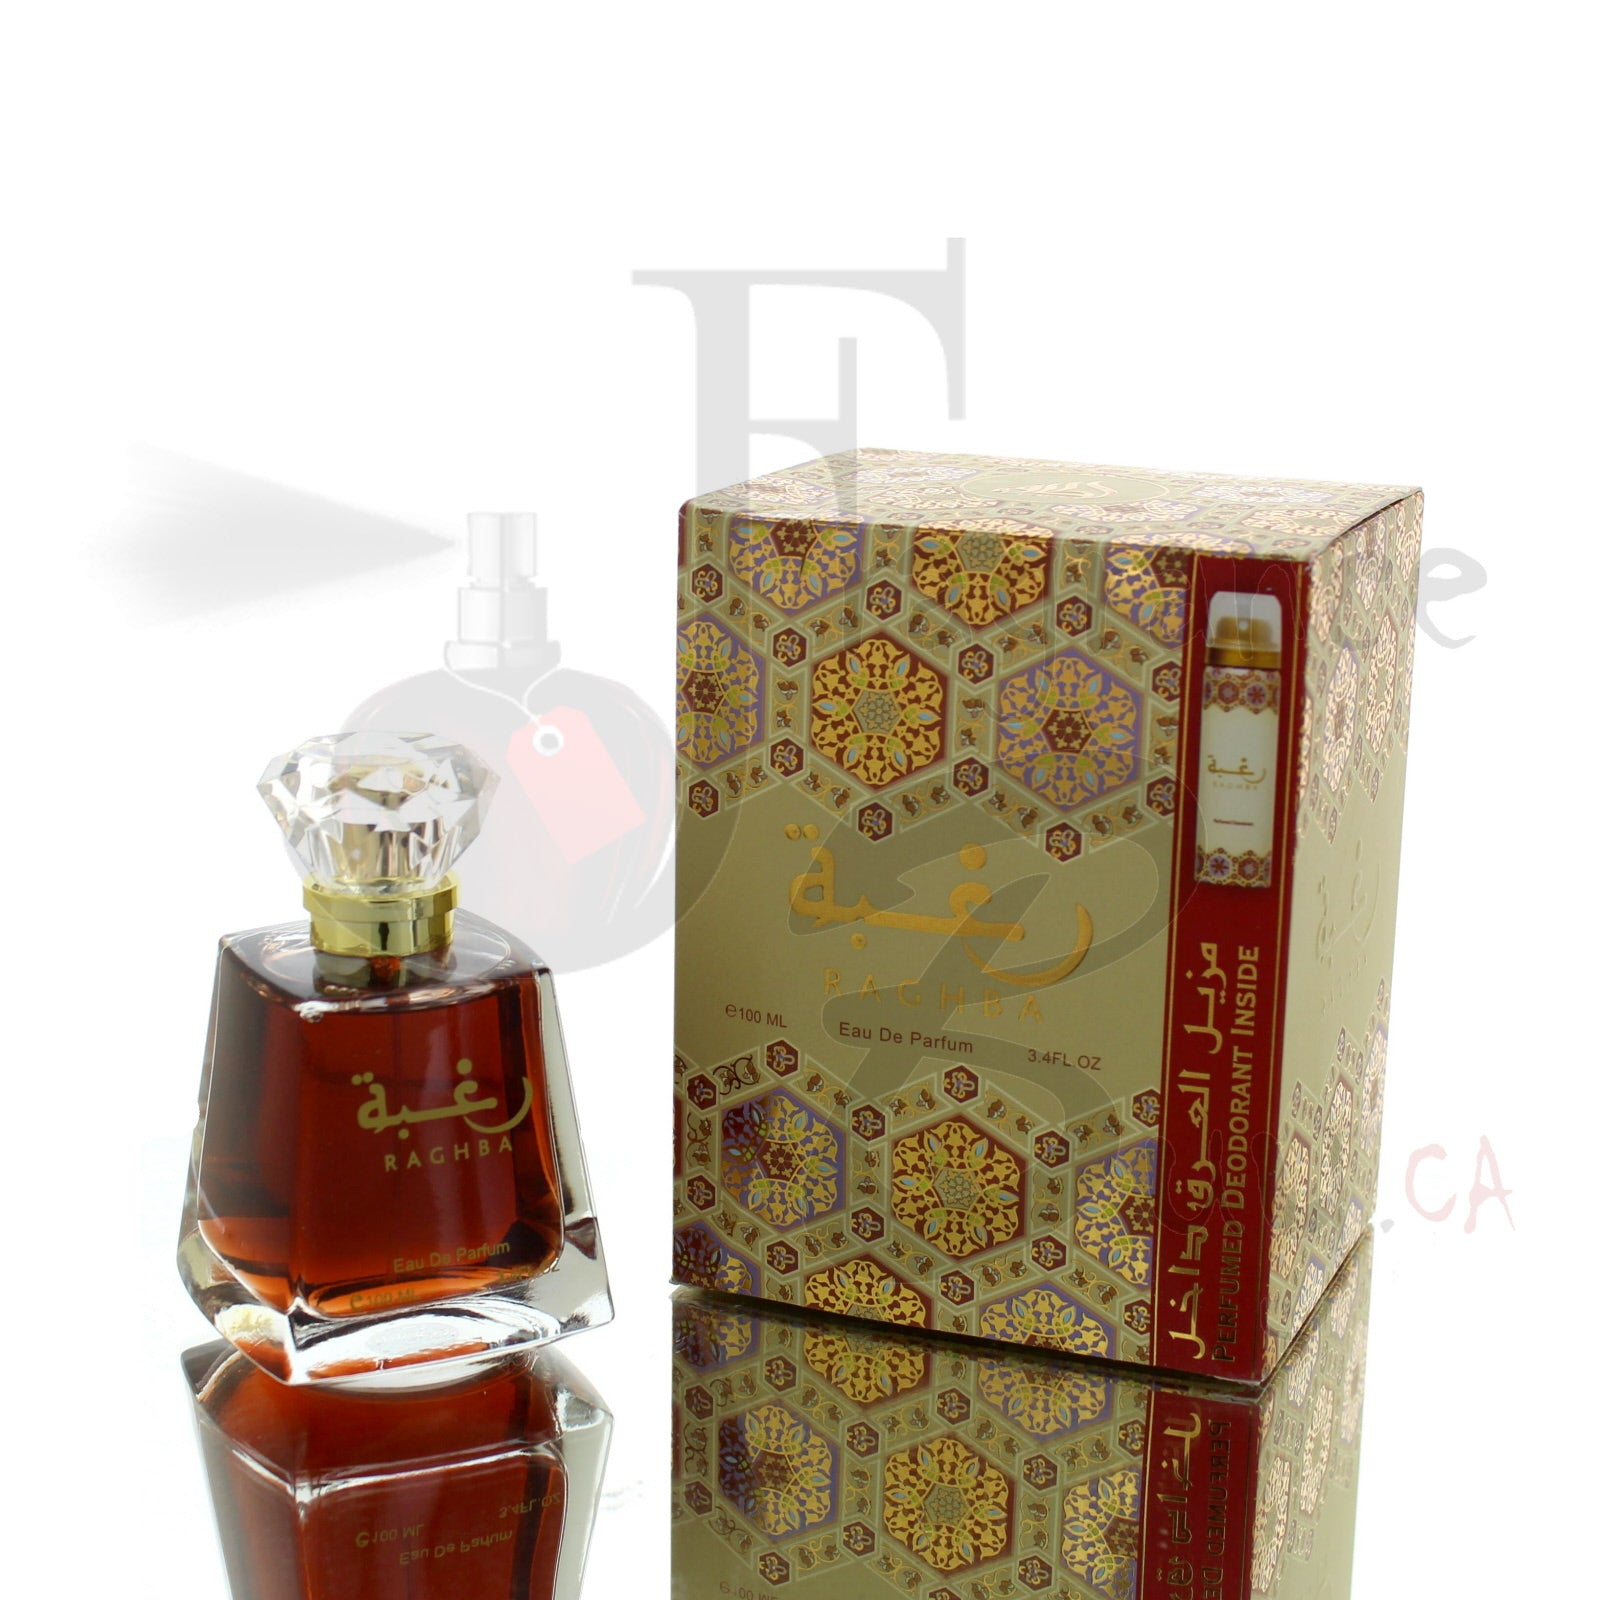 Lattafa Raghba Original Fragrance (As Pictured) For Man/Woman